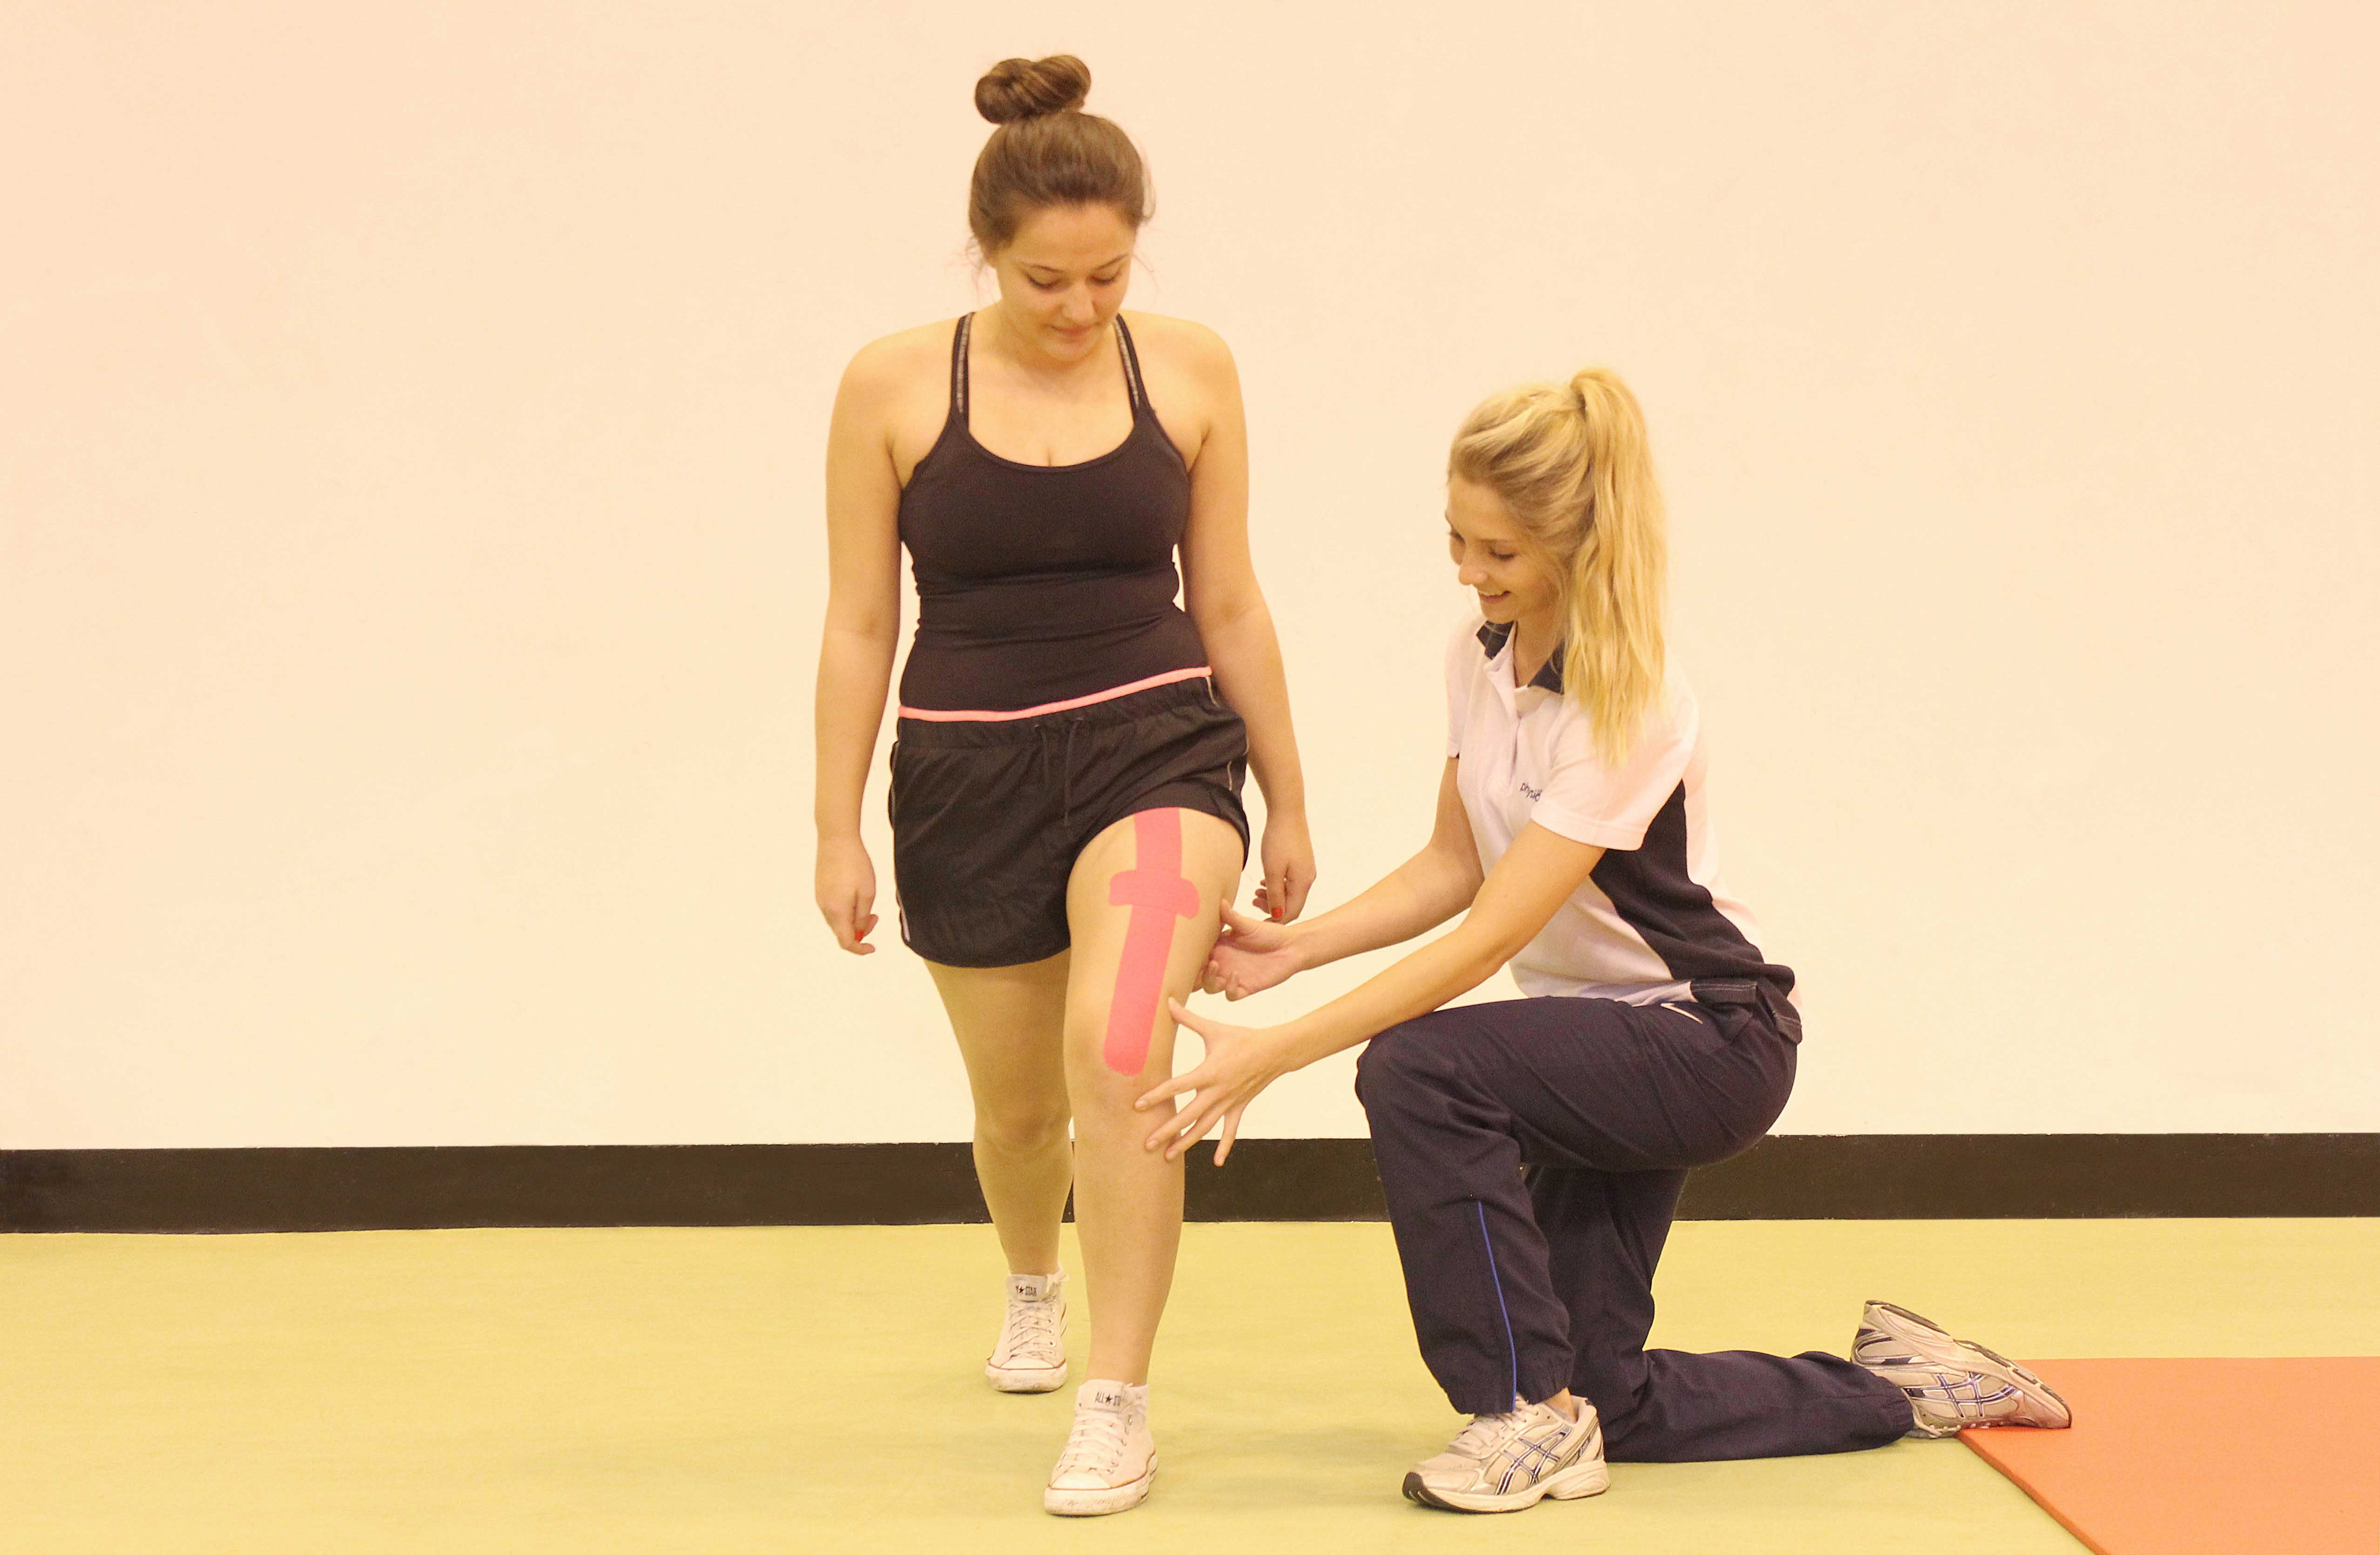 Progressive strengthening exercises, using supportive tape, supervised by therapist